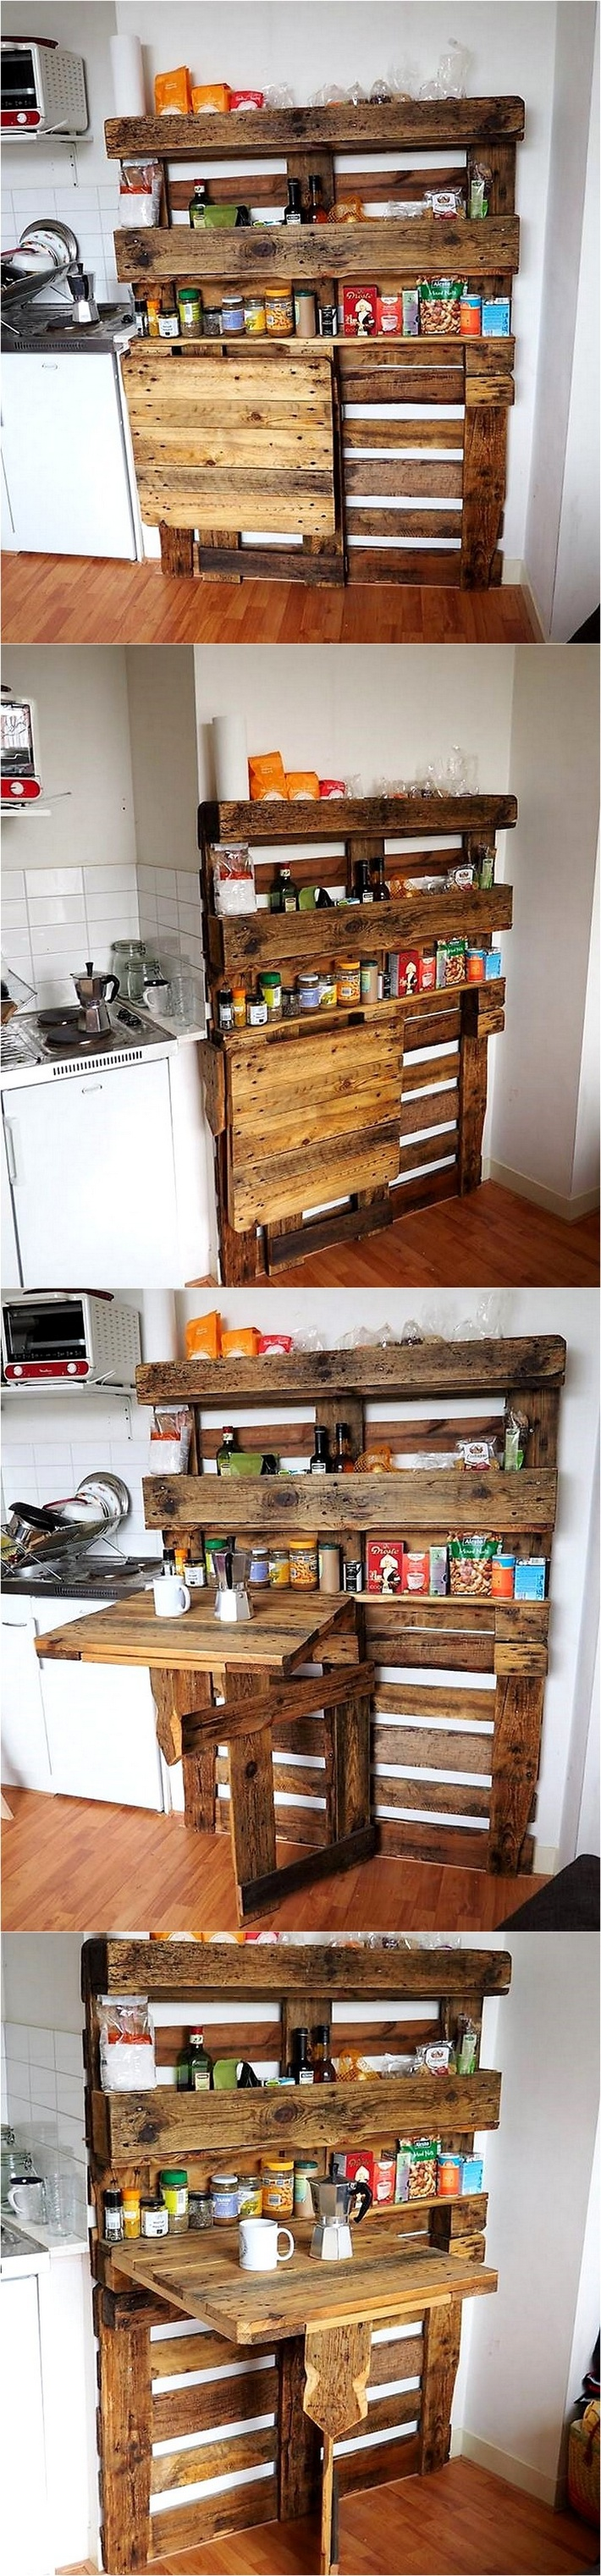 pallet kitchen spice shelving